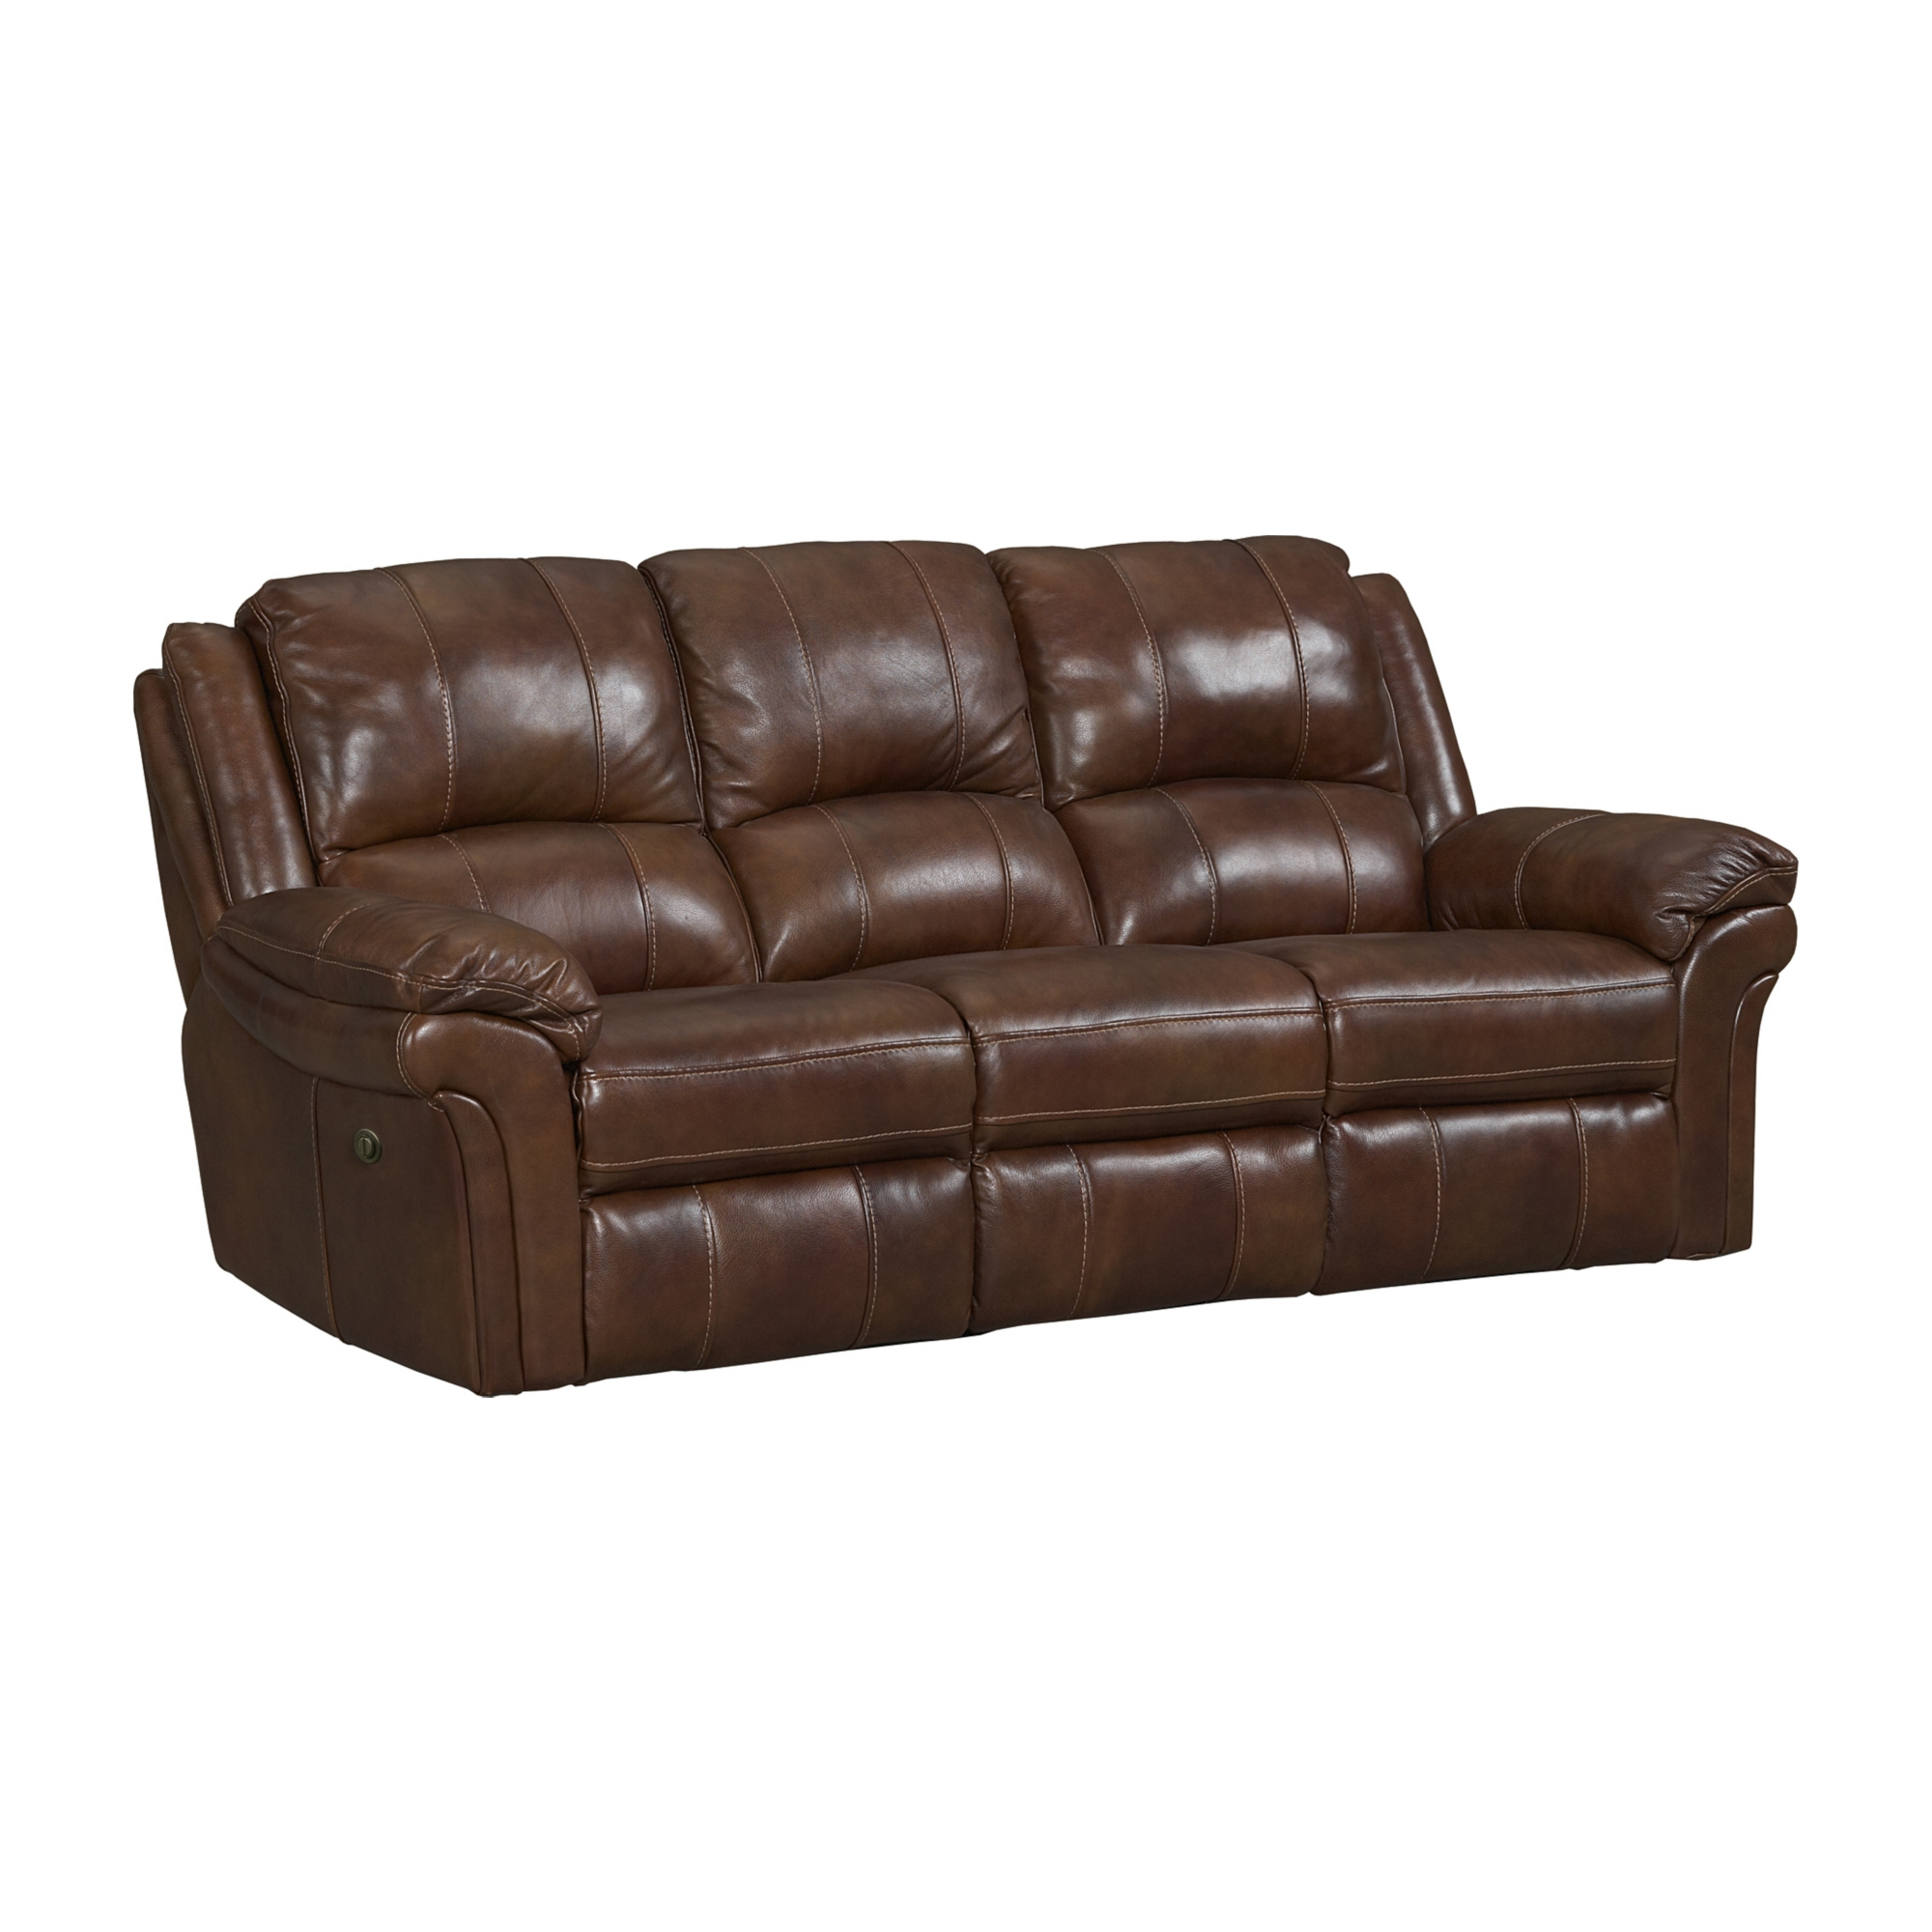 Gorgeous 10 Leather Sofa Recliner Design Ideas Of Top 10